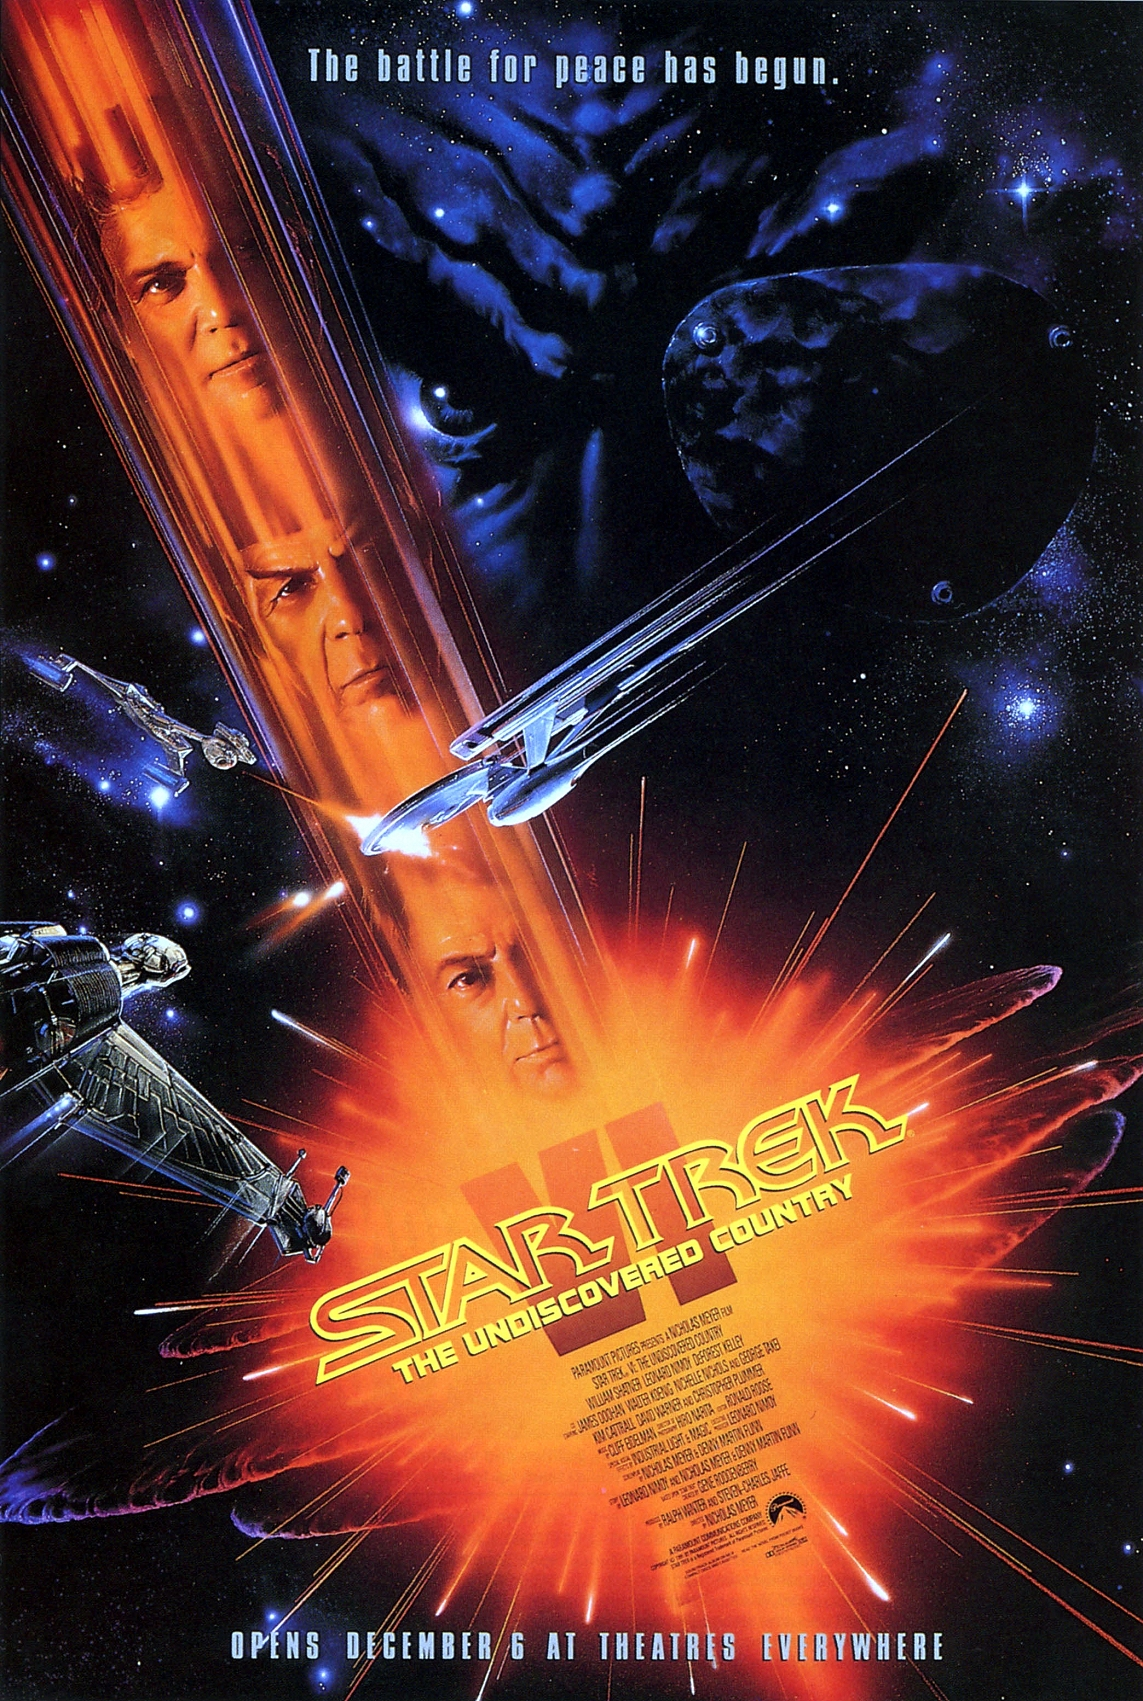 https://i1.wp.com/movies.trekcore.com/gallery/albums/tuc_other/posters/tuc_poster.jpg